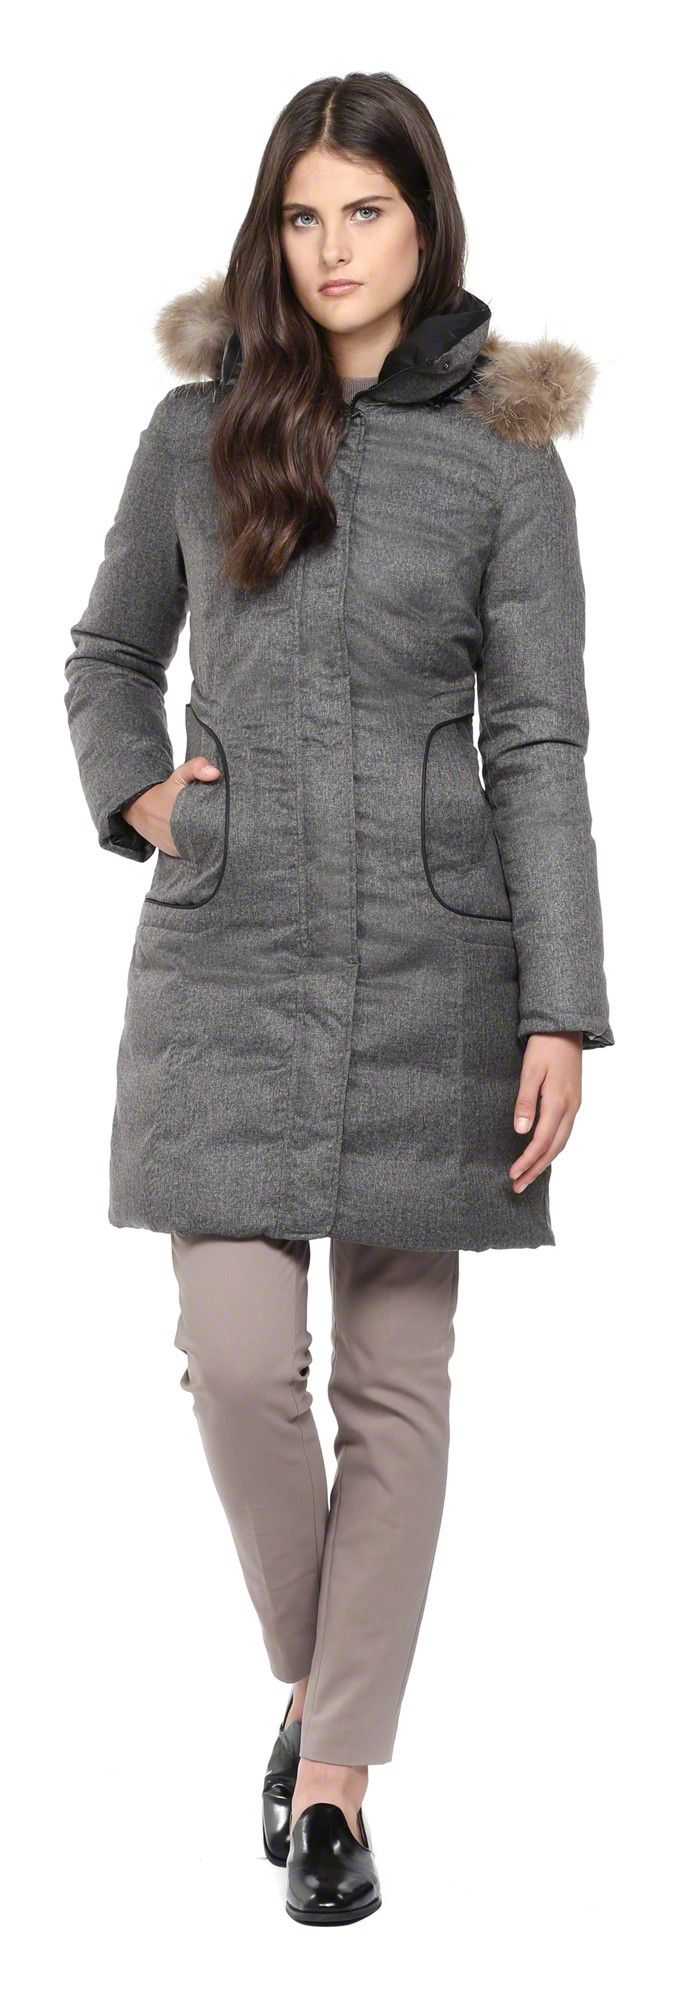 SOIA & KYO - ISOBEL-SP1 REVERSIBLE GREY WINTER DOWN COAT FOR WOMEN ...